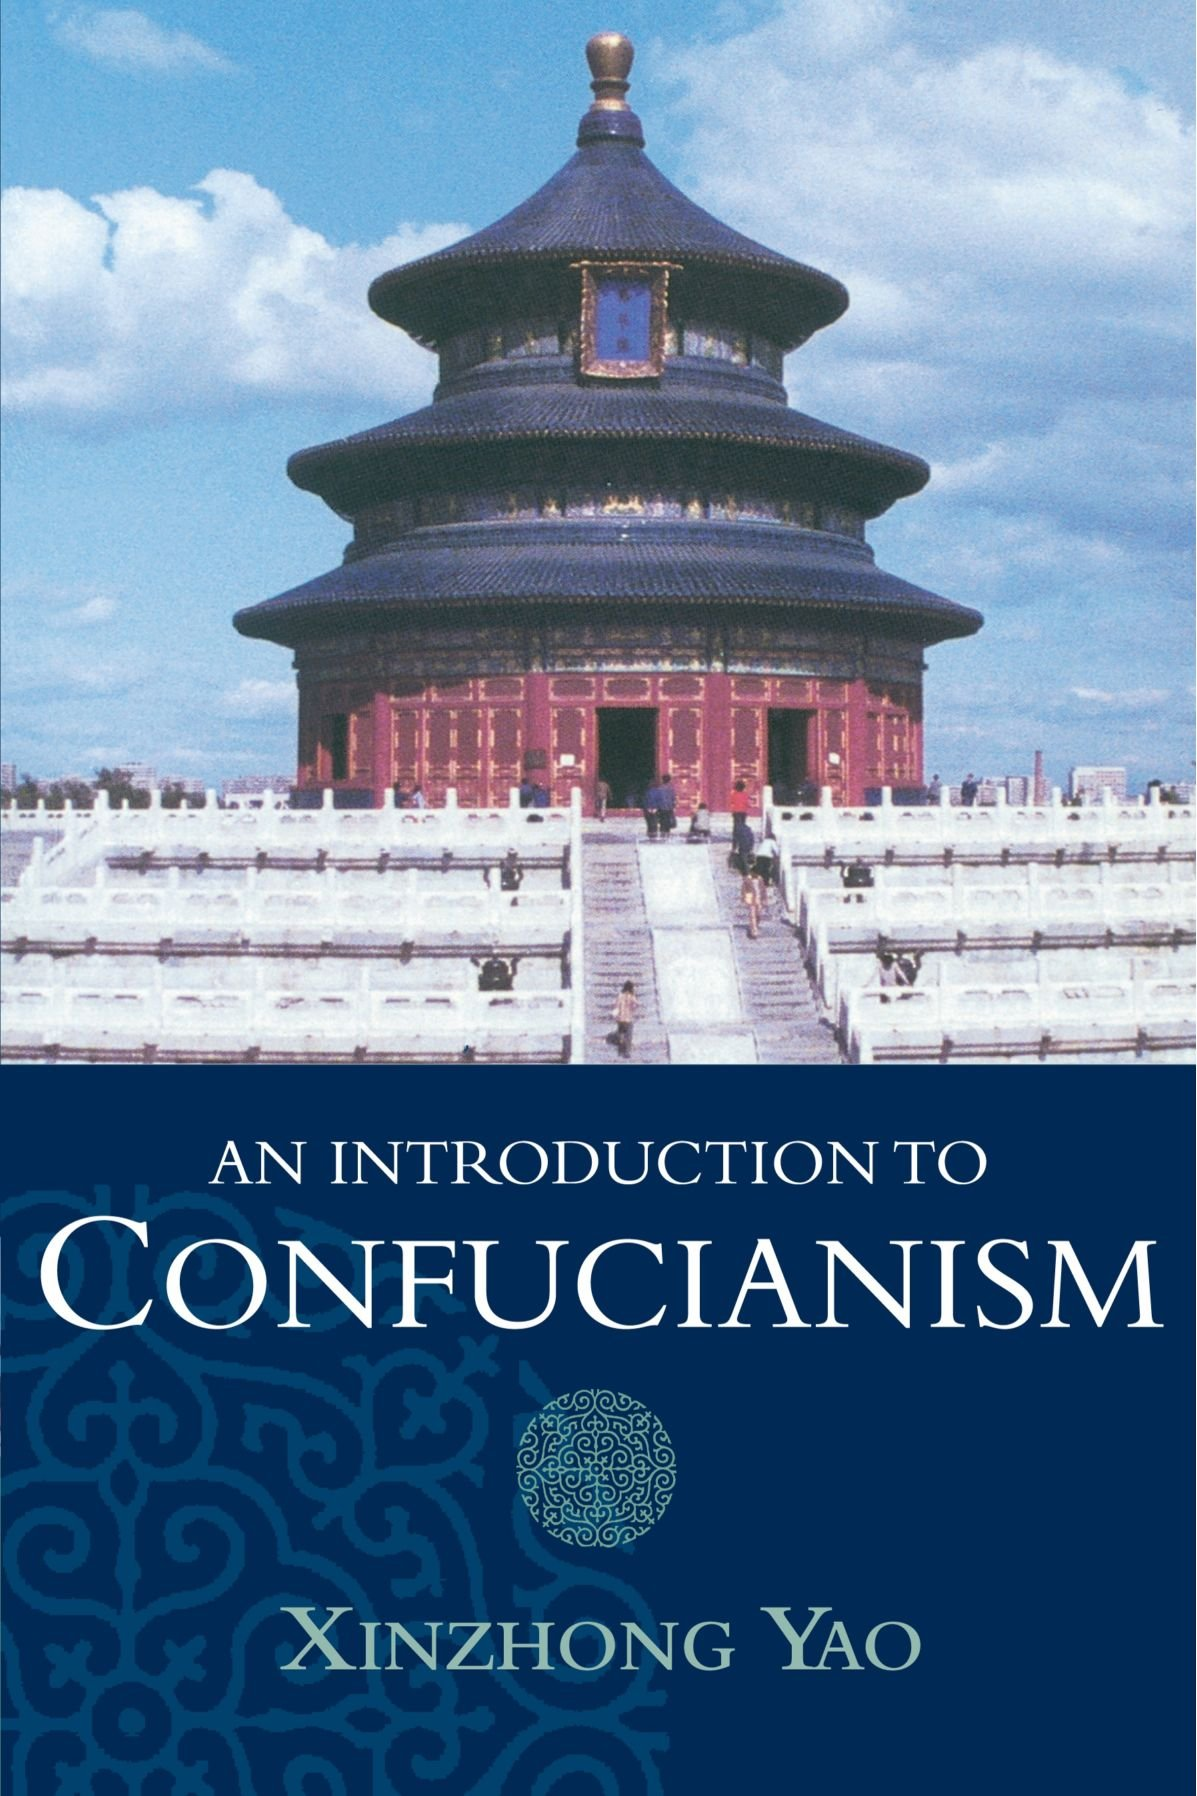 confucianism religionfacts sun anna an introduction to confucianism